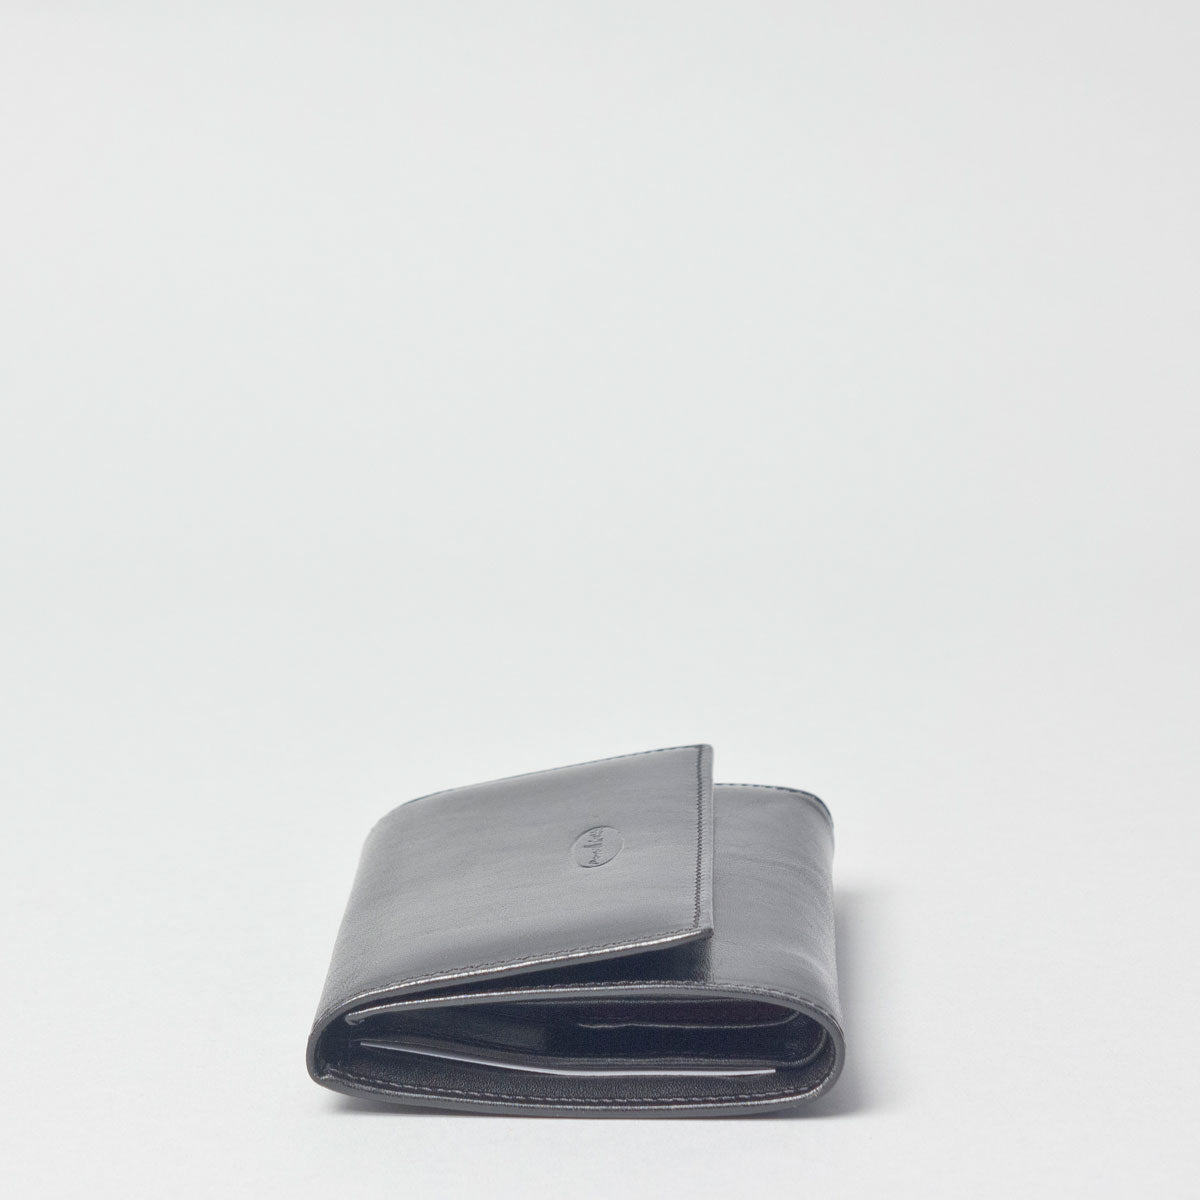 Image 3 of the Black Ladies Purse with Pocket